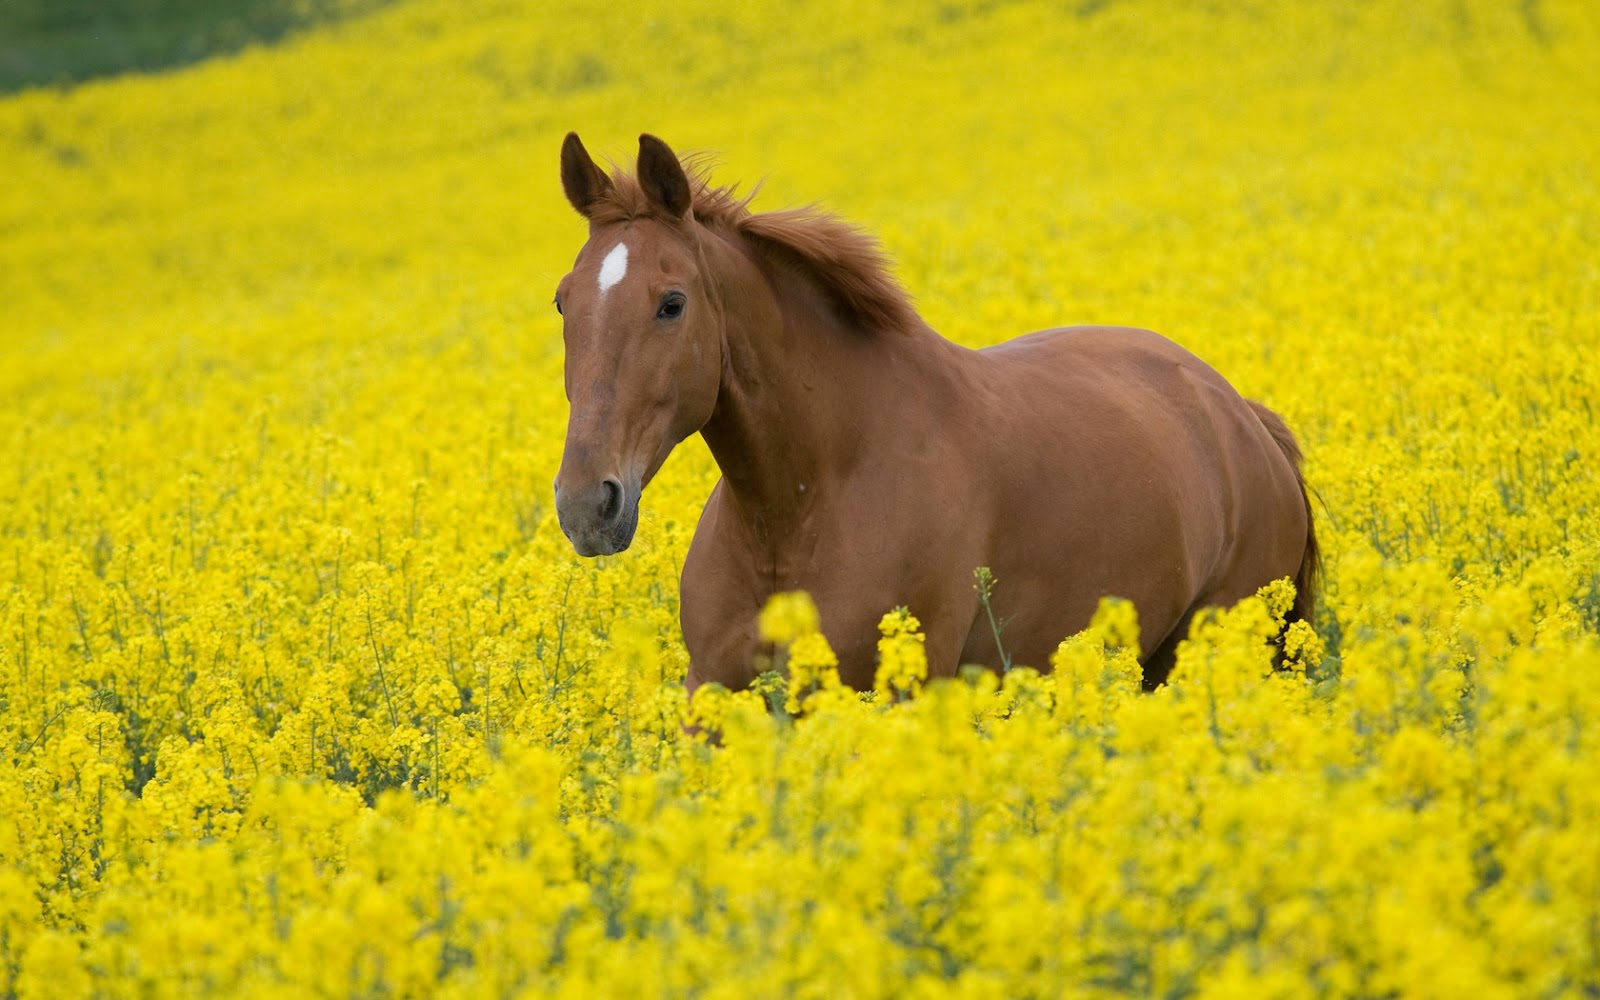 Brown Horse in Yellow Flowers Field HD Animal and Nature Wallpaper 1600x1000